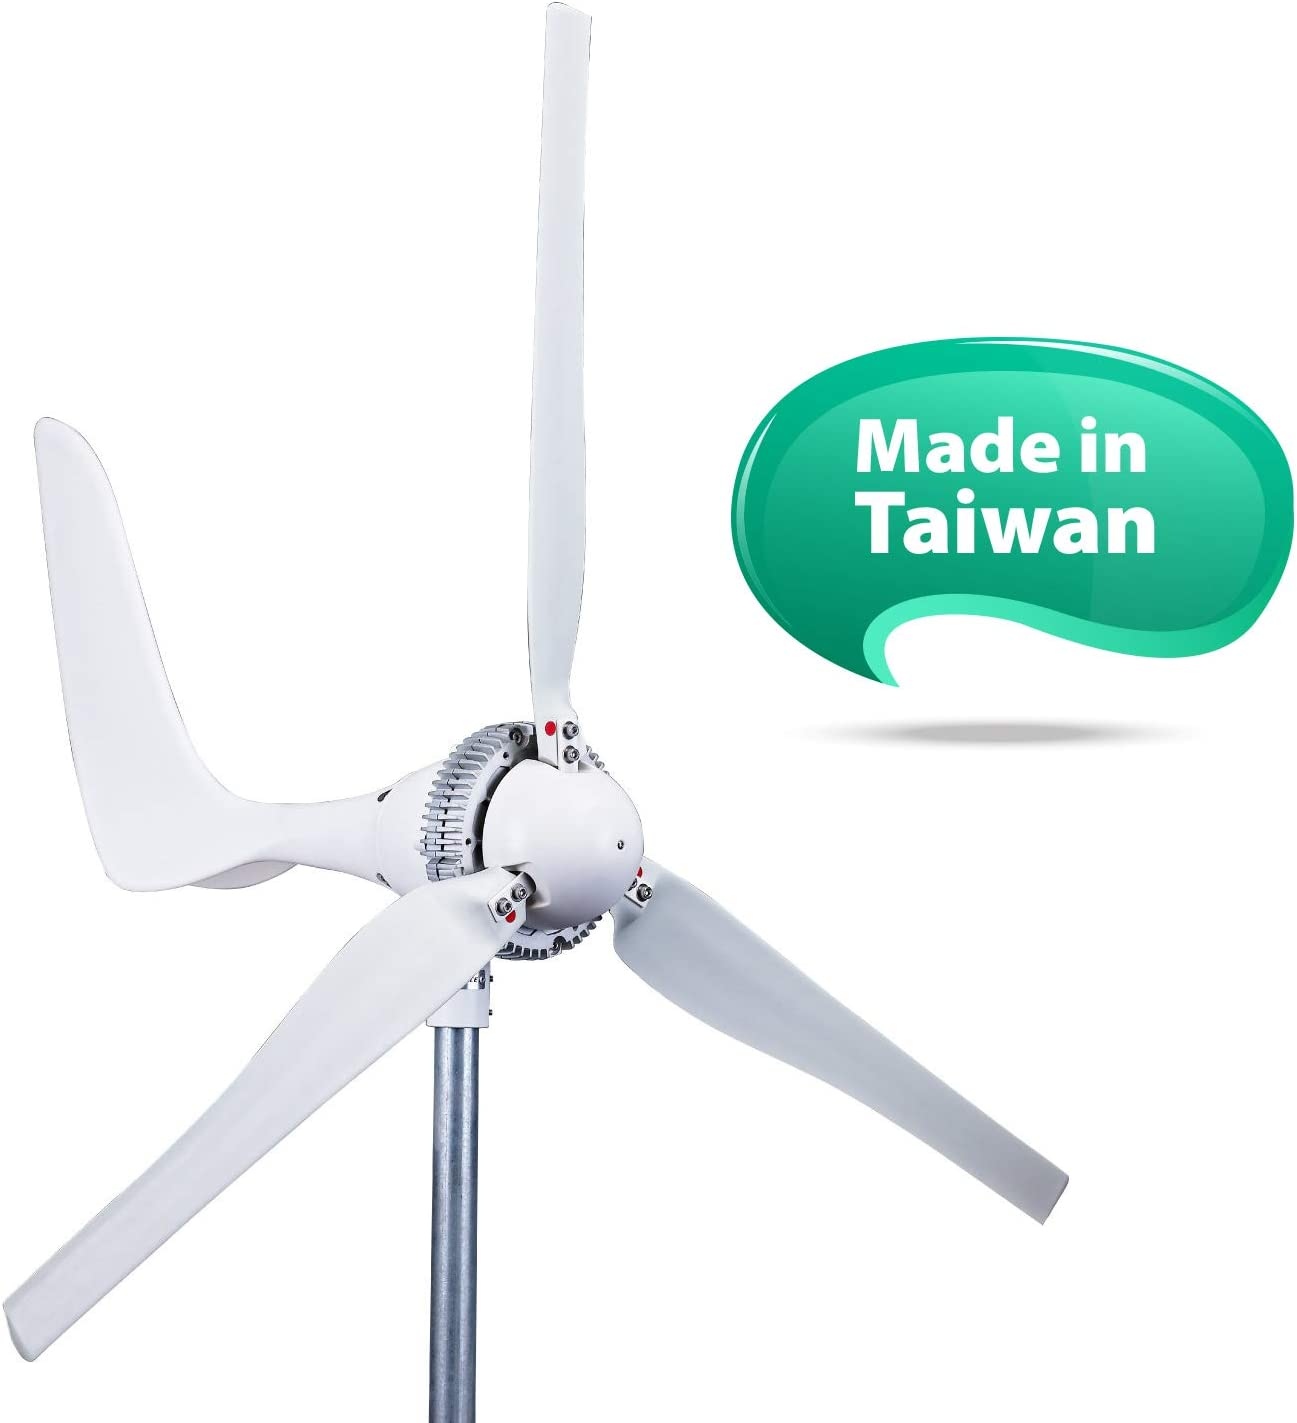 Amazon.com : Automaxx Windmill 1500W 24V 60A Wind Turbine Generator kit.  Automatic and Manual Braking System DIY Installation, MPPT Controller with  Bluetooth Function Xmas Gift : Garden & OutdoorAmazon.com